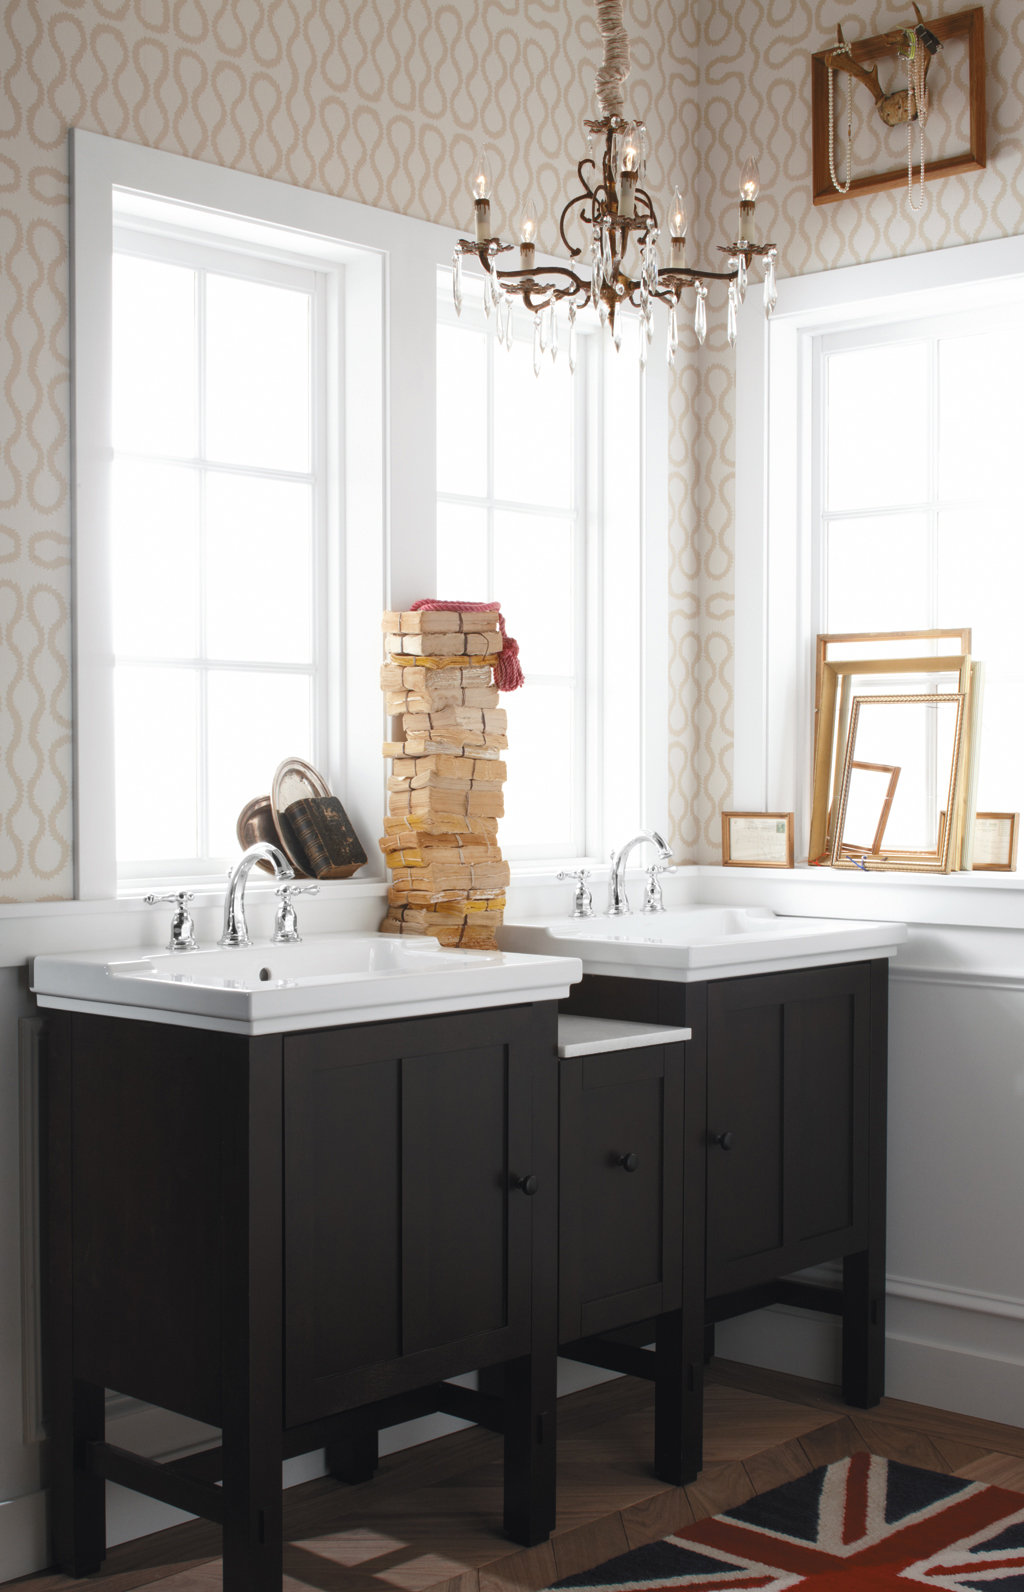 New Kohler K2489F41 Westmore Westwood Single Basin Bathroom Vanities